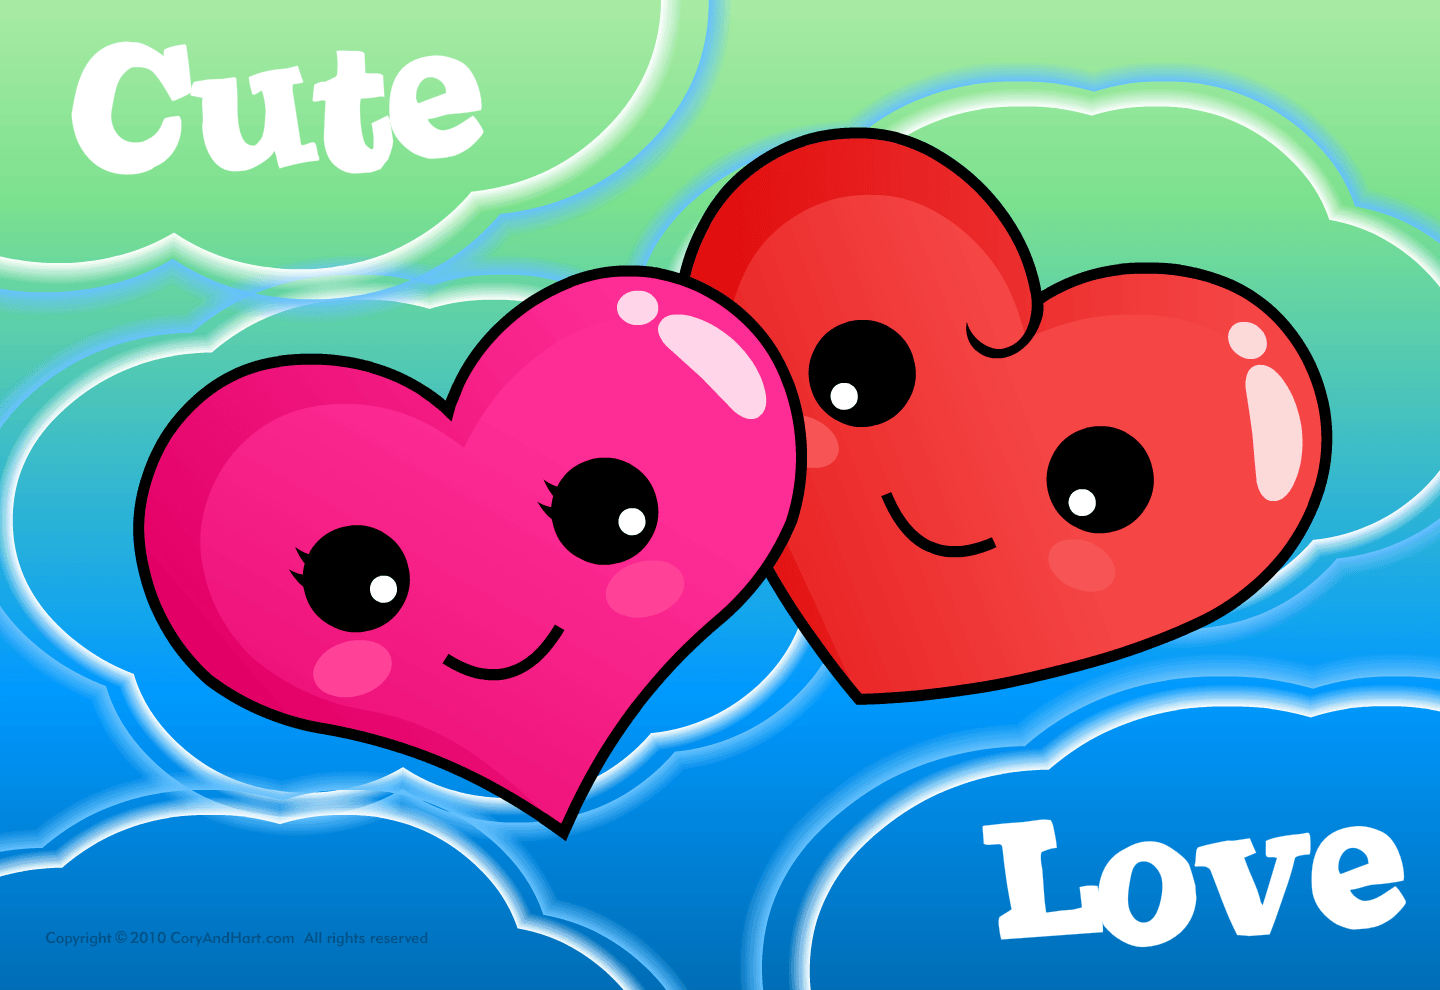 Wallpaper Of cute Love cartoon : Love cute Wallpapers - Wallpaper cave